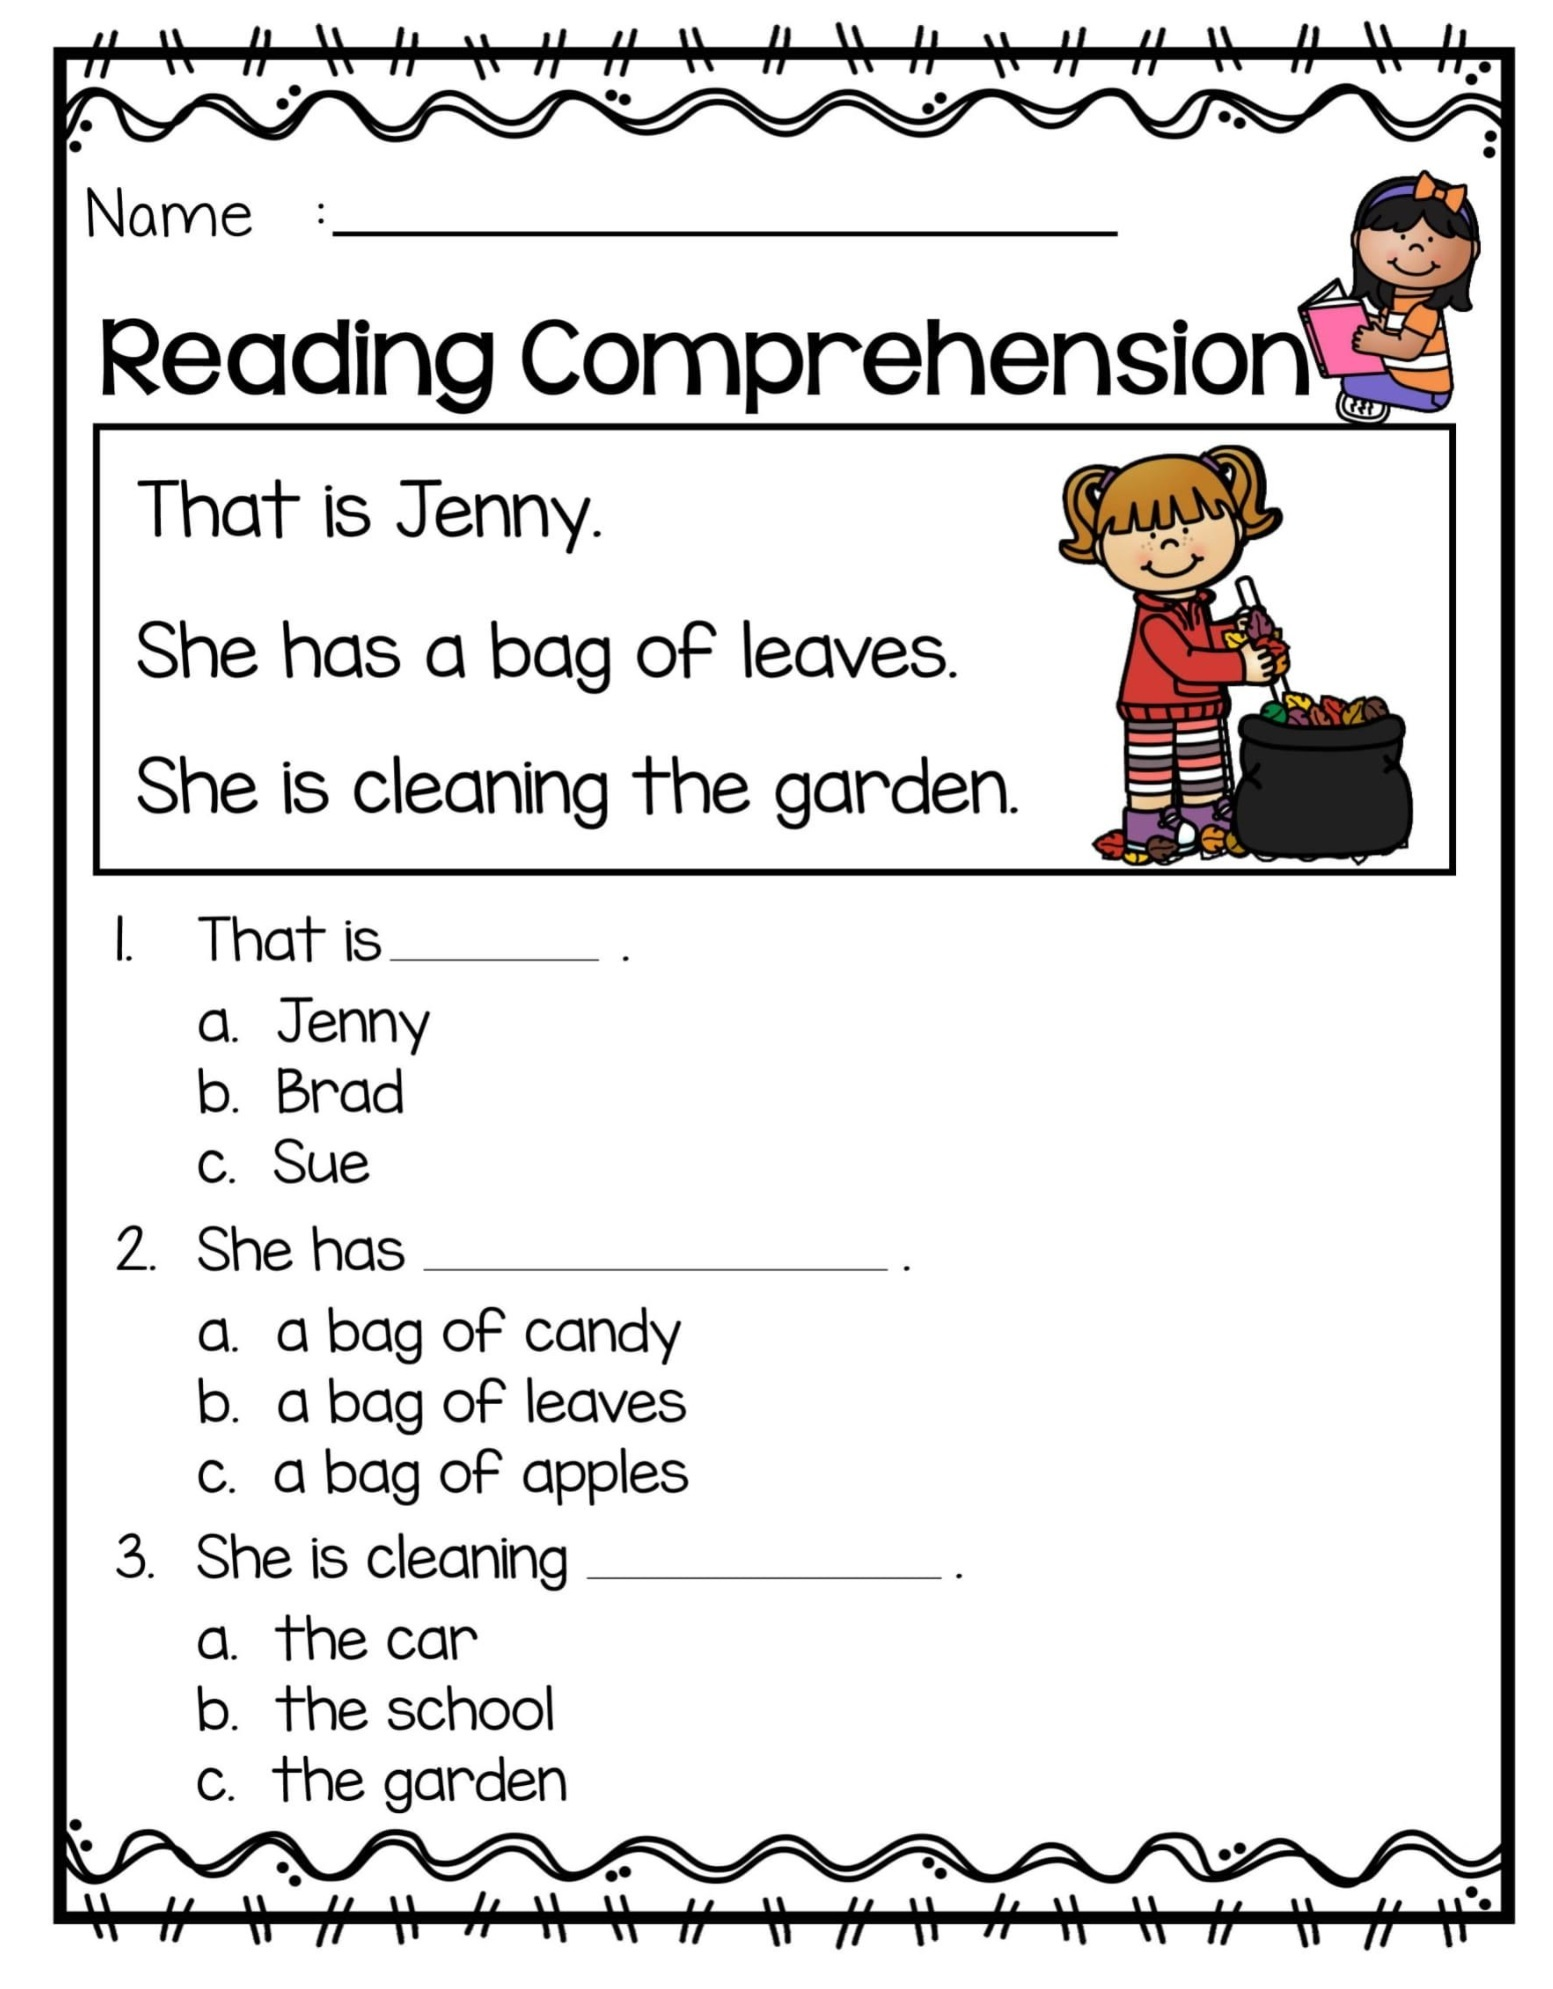 Free Reading Comprehension Worksheet for 1st Grade